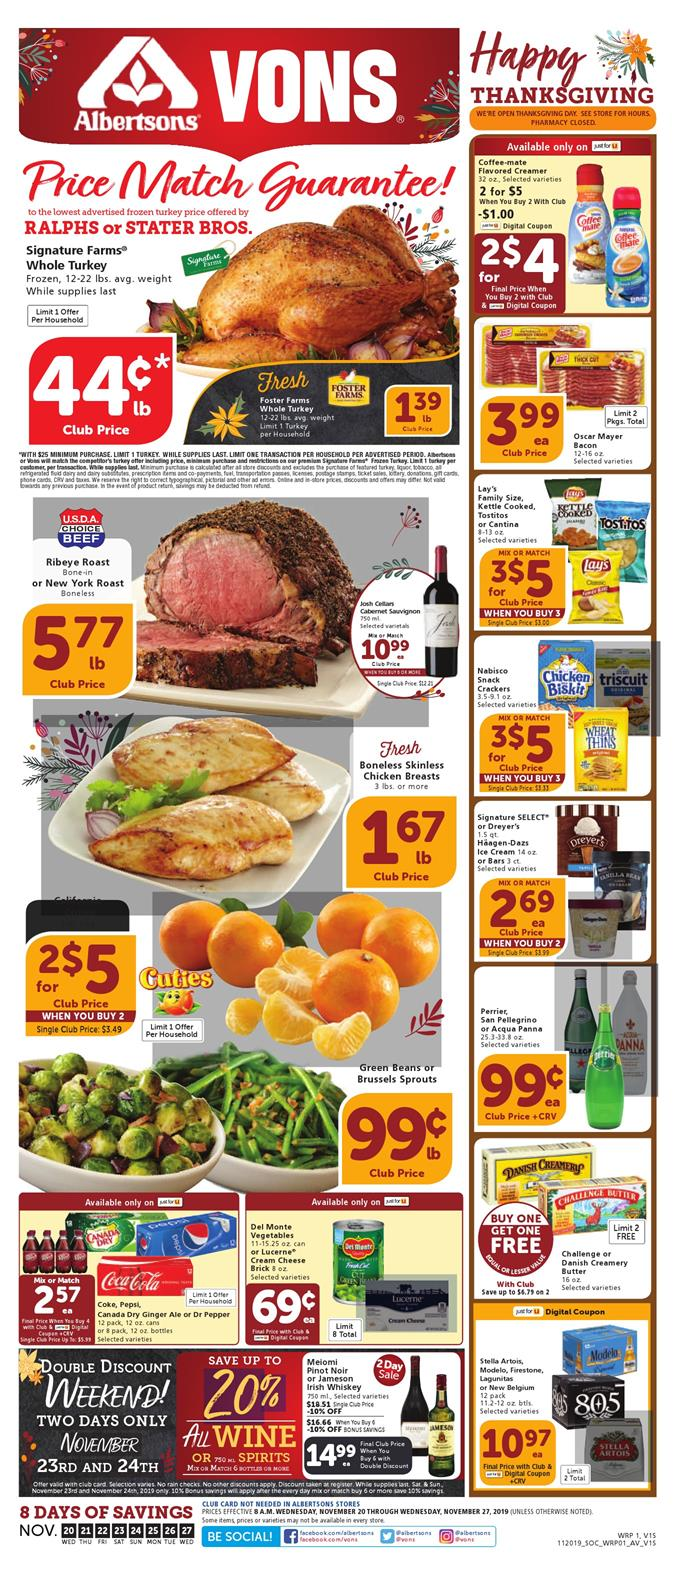 Vons Weekly Ad Deals Nov 20 - 28, 2019